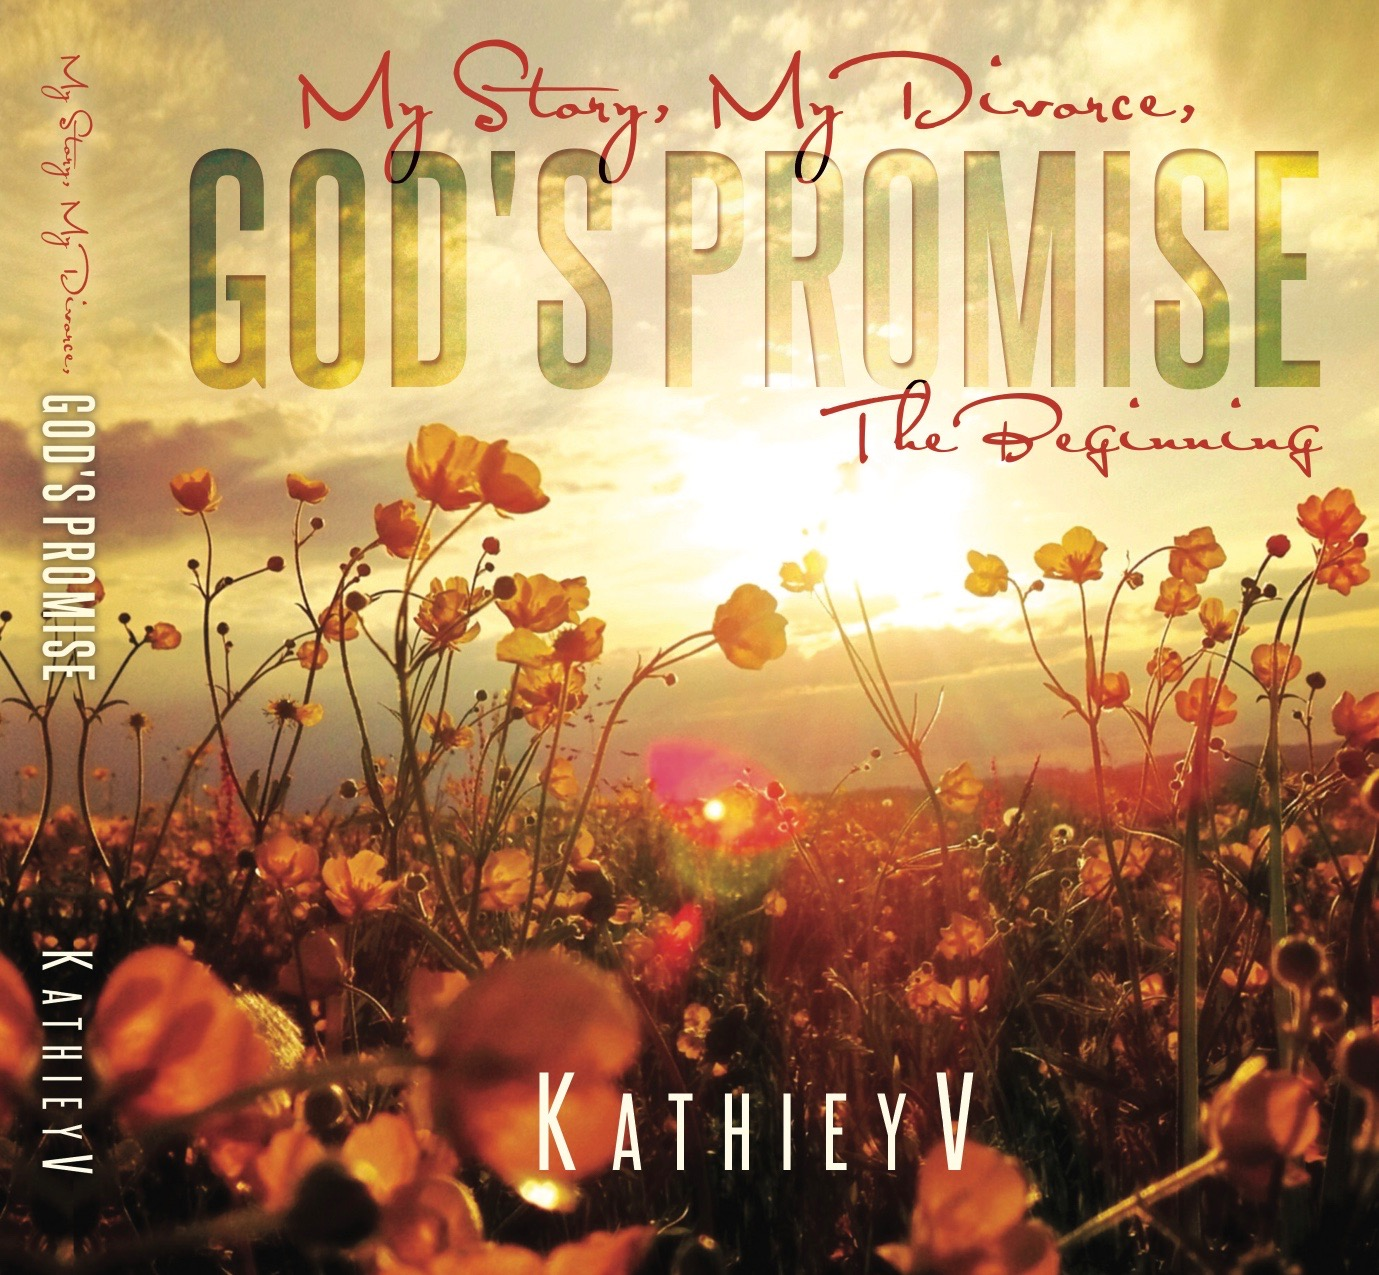 My Story My Divorce God's Promise, The Beginning